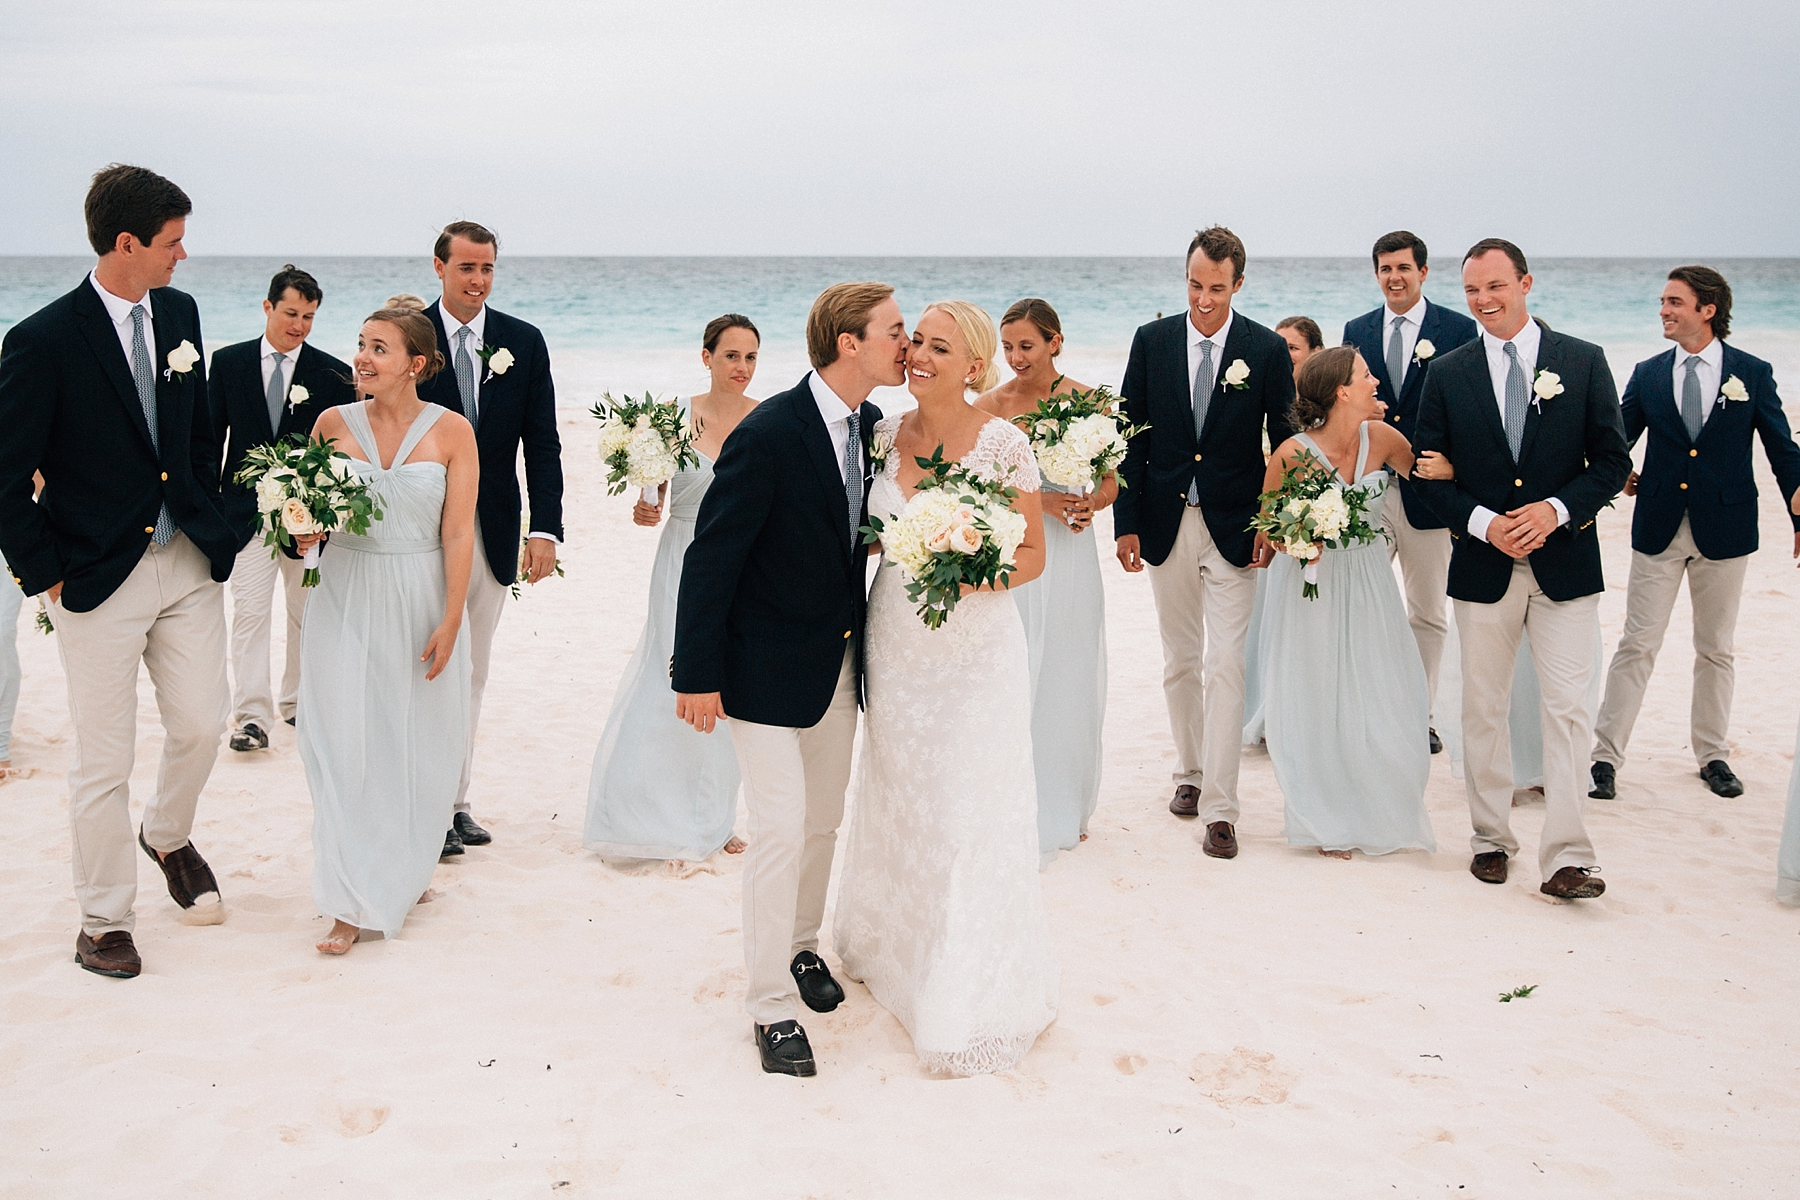 briland-wedding-photographer-harbour-island-bahamas_0032.jpg